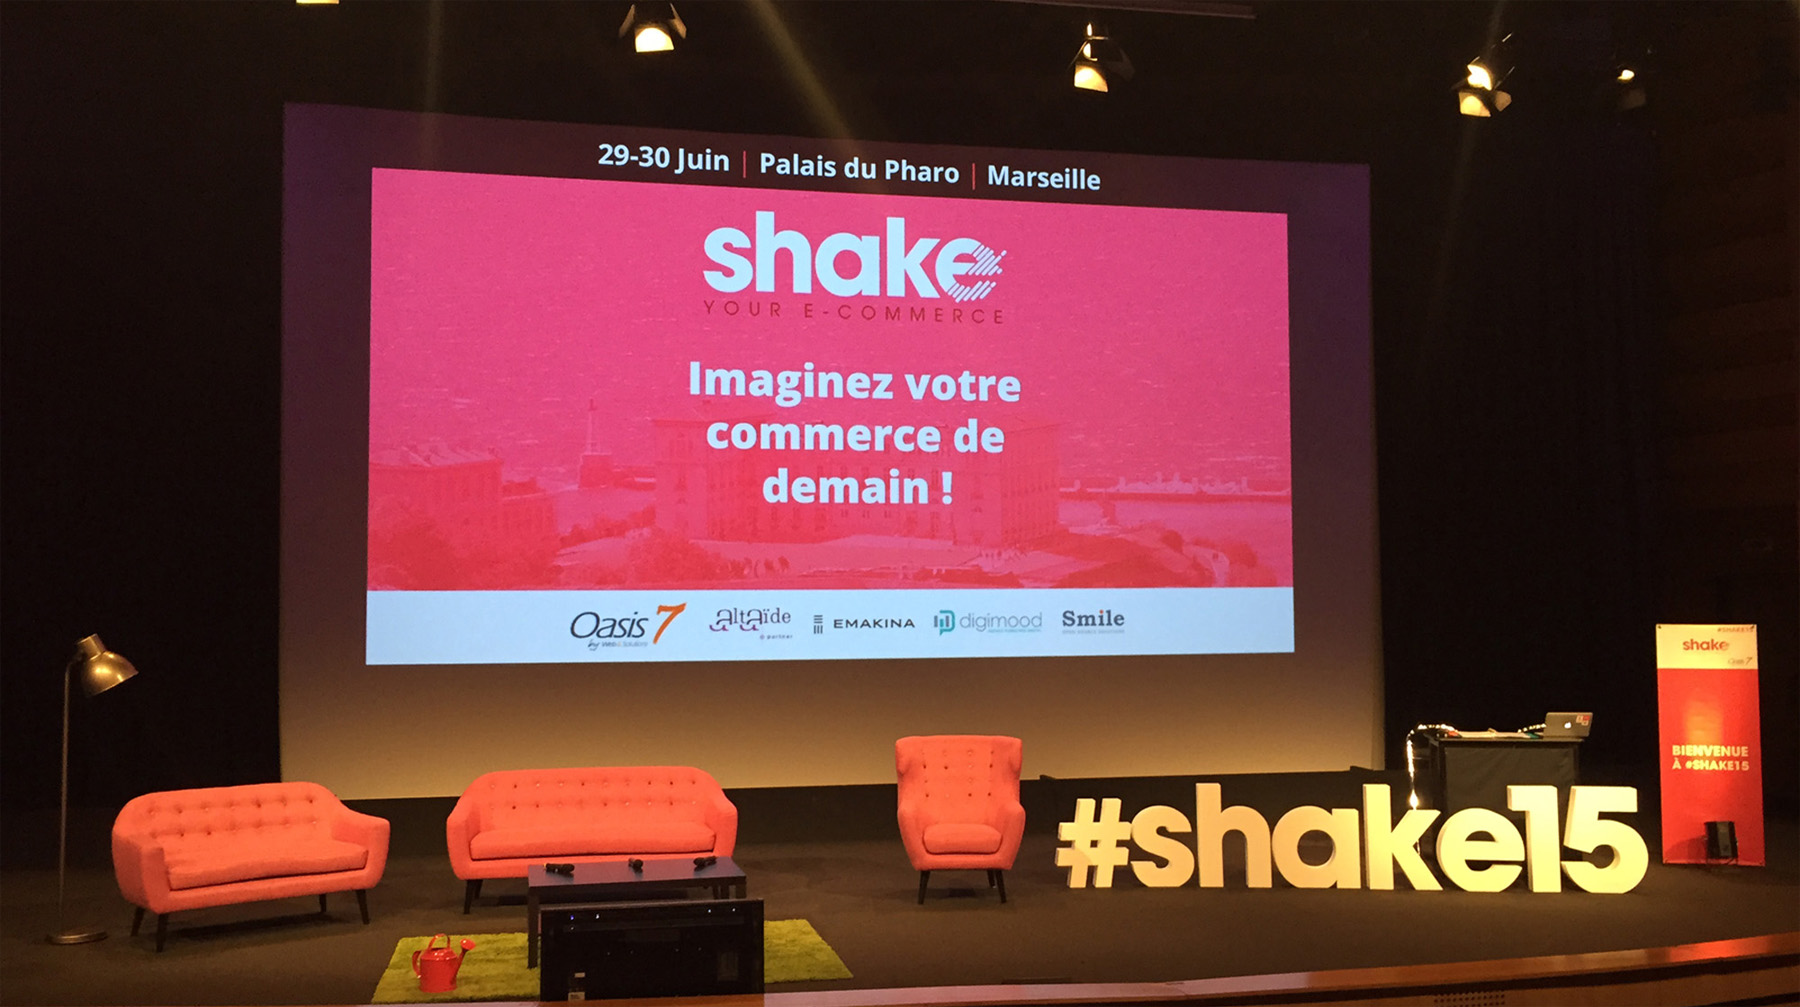 Digimood, proud sponsor of #Shake15